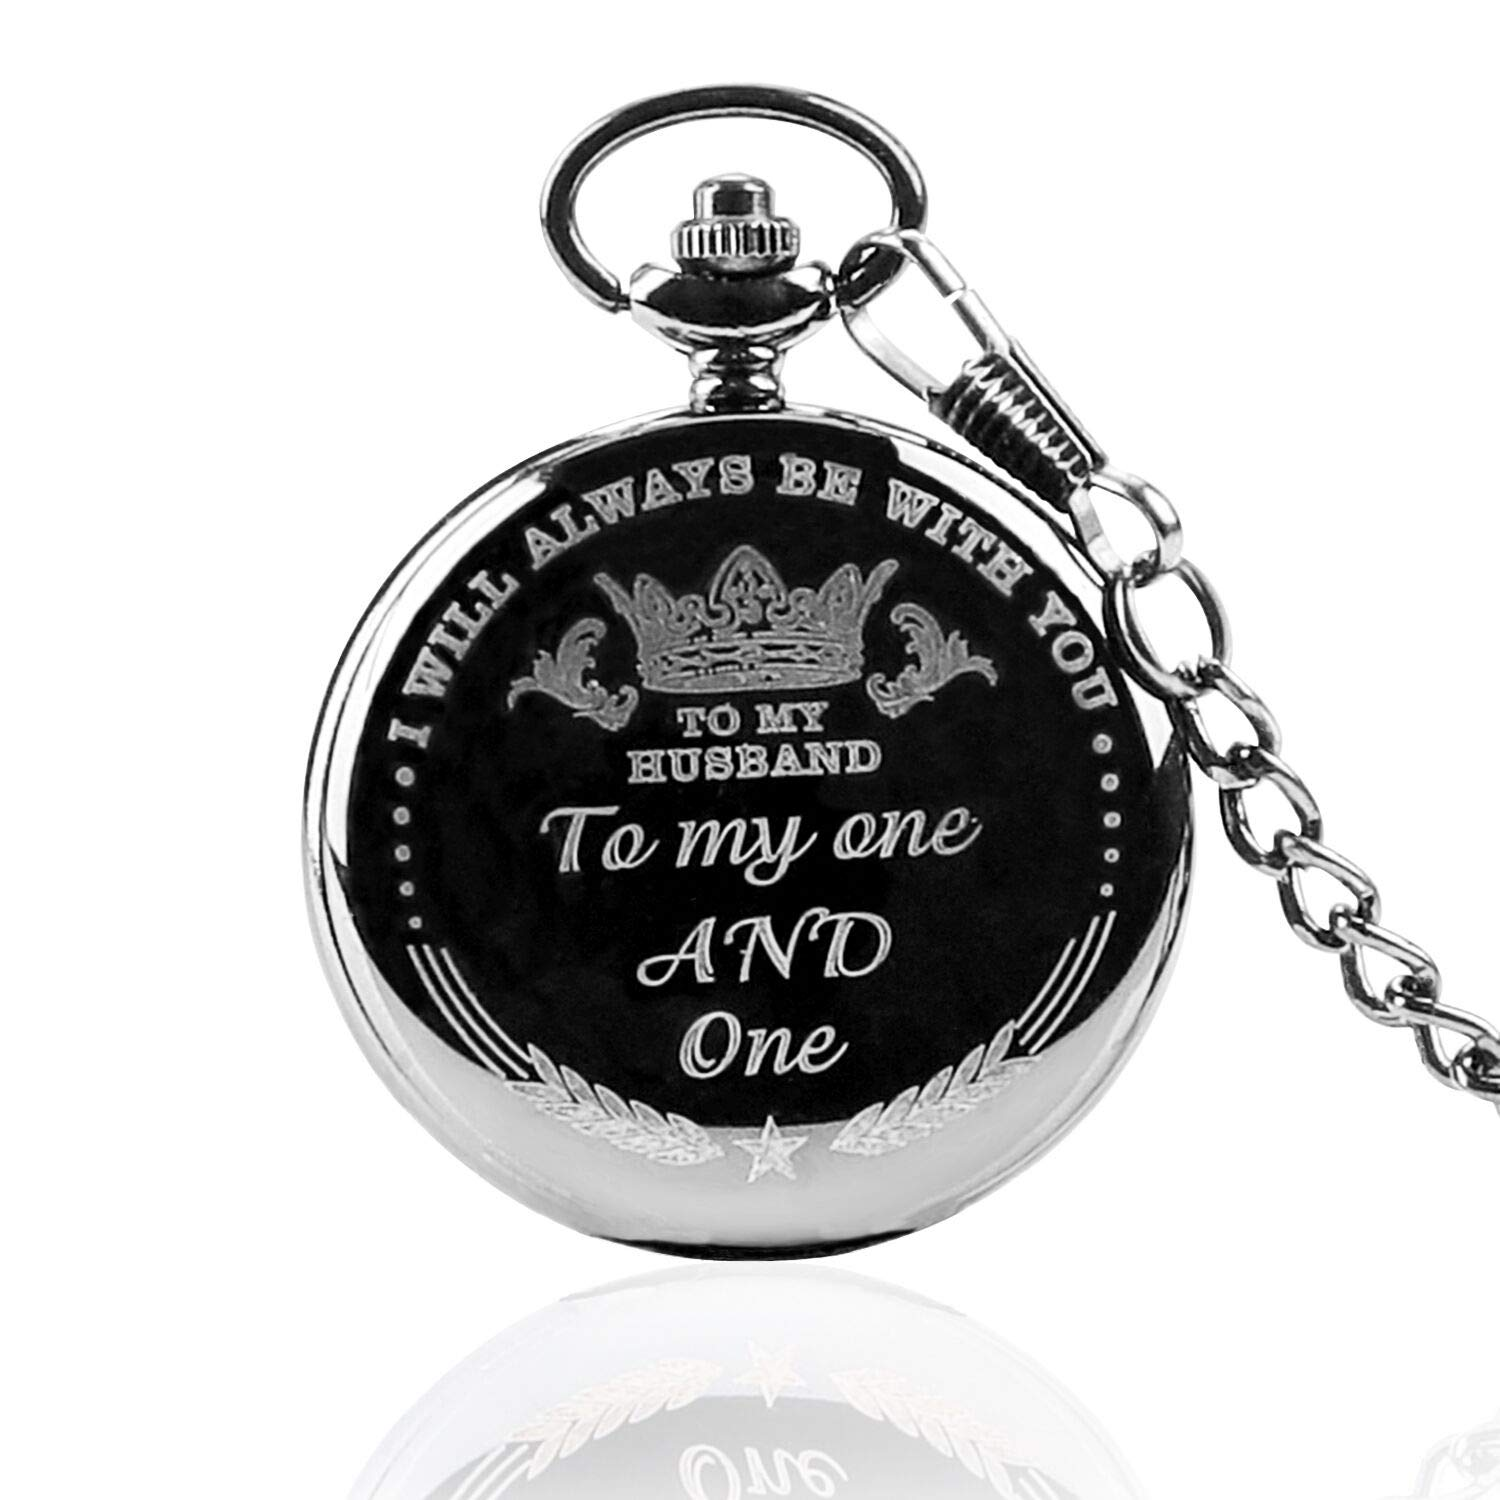 Anniversary Gifts for Men, Engraved to My Husband Pocket Watch from Wife Gift,Husband Gifts from Wife Pocket Watches, Best Birthday Gifts for Him,Father Day Gifts |